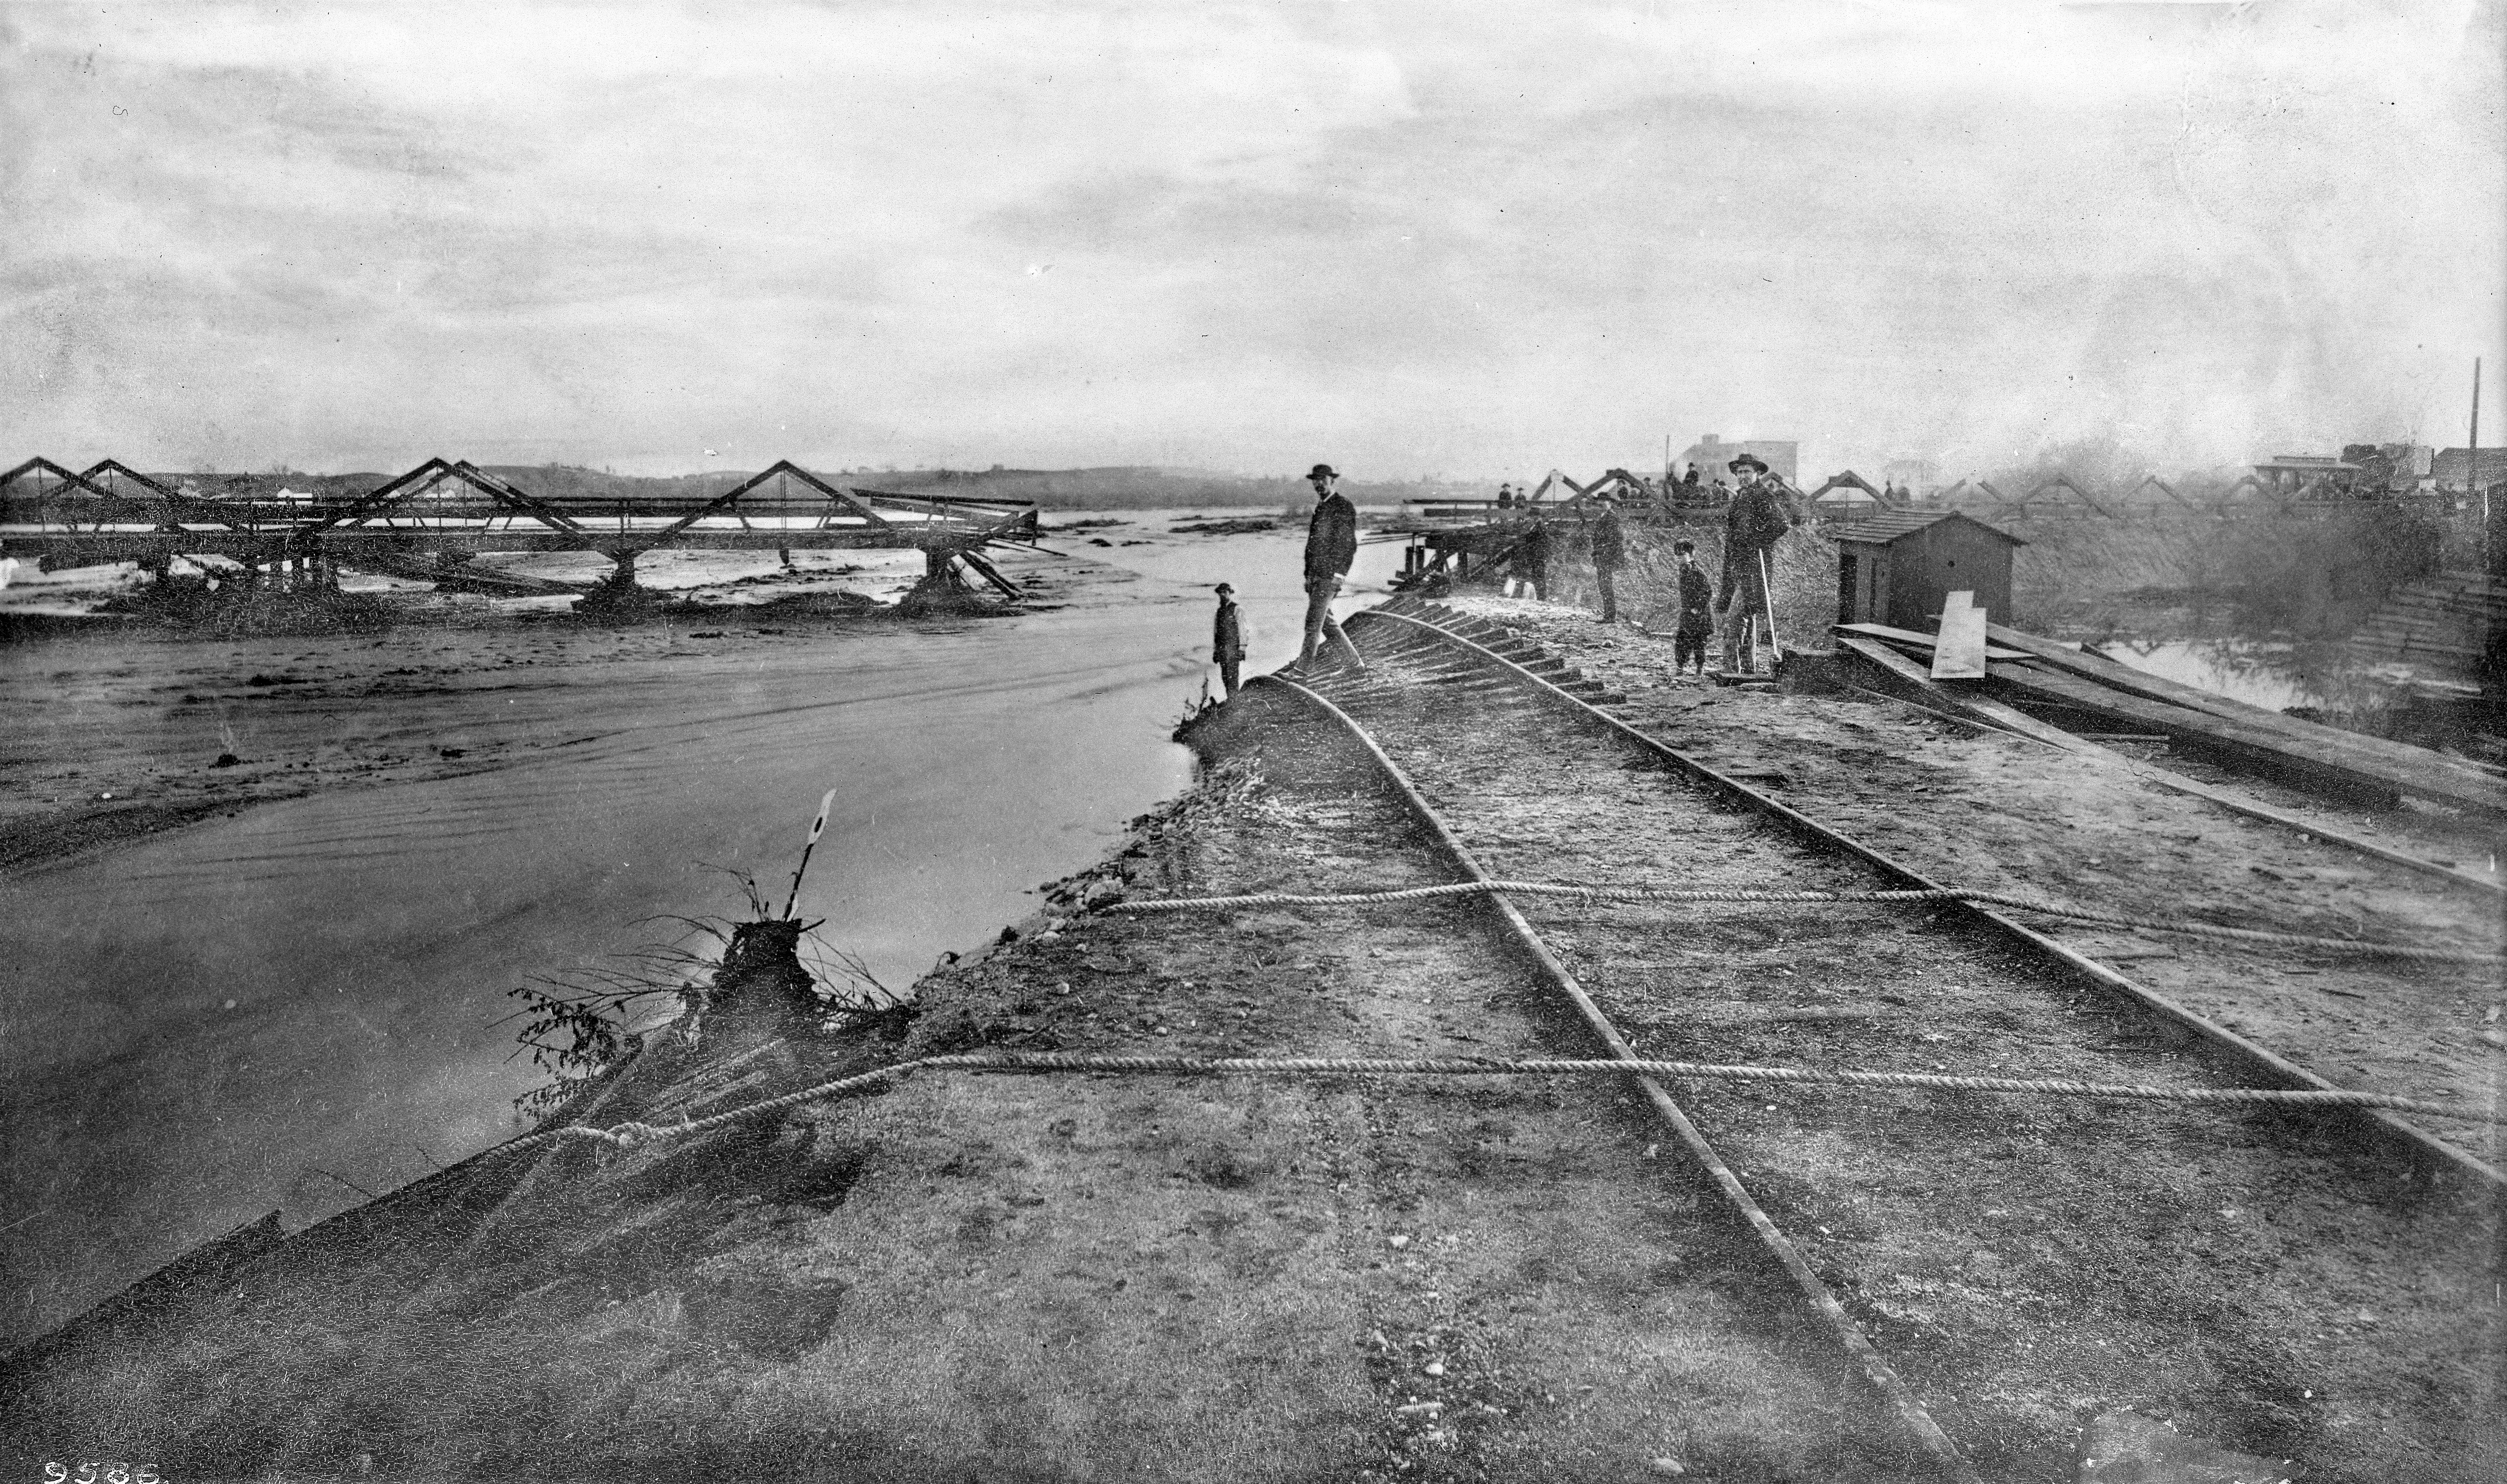 Damage after the Los Angeles River flood of 1885-86. Courtesy of the Title Insurance and Trust / C.C. Pierce Photography Collection, USC Libraries.